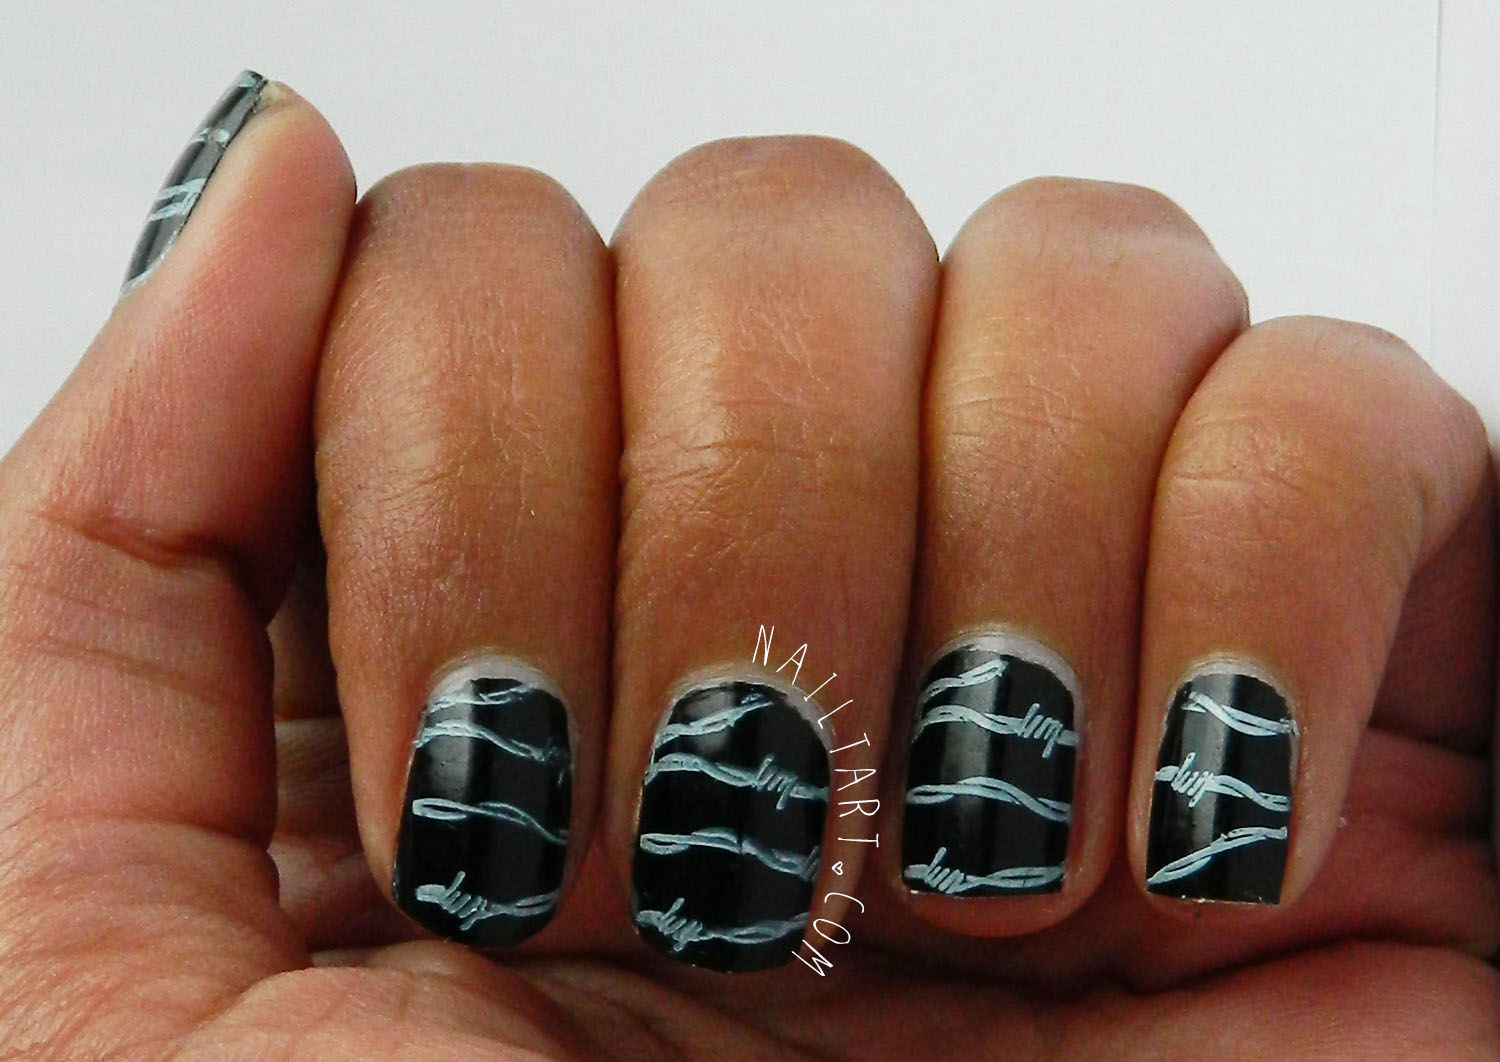 25 best Southern Nails images on Pinterest | Nail scissors, Nail art ...